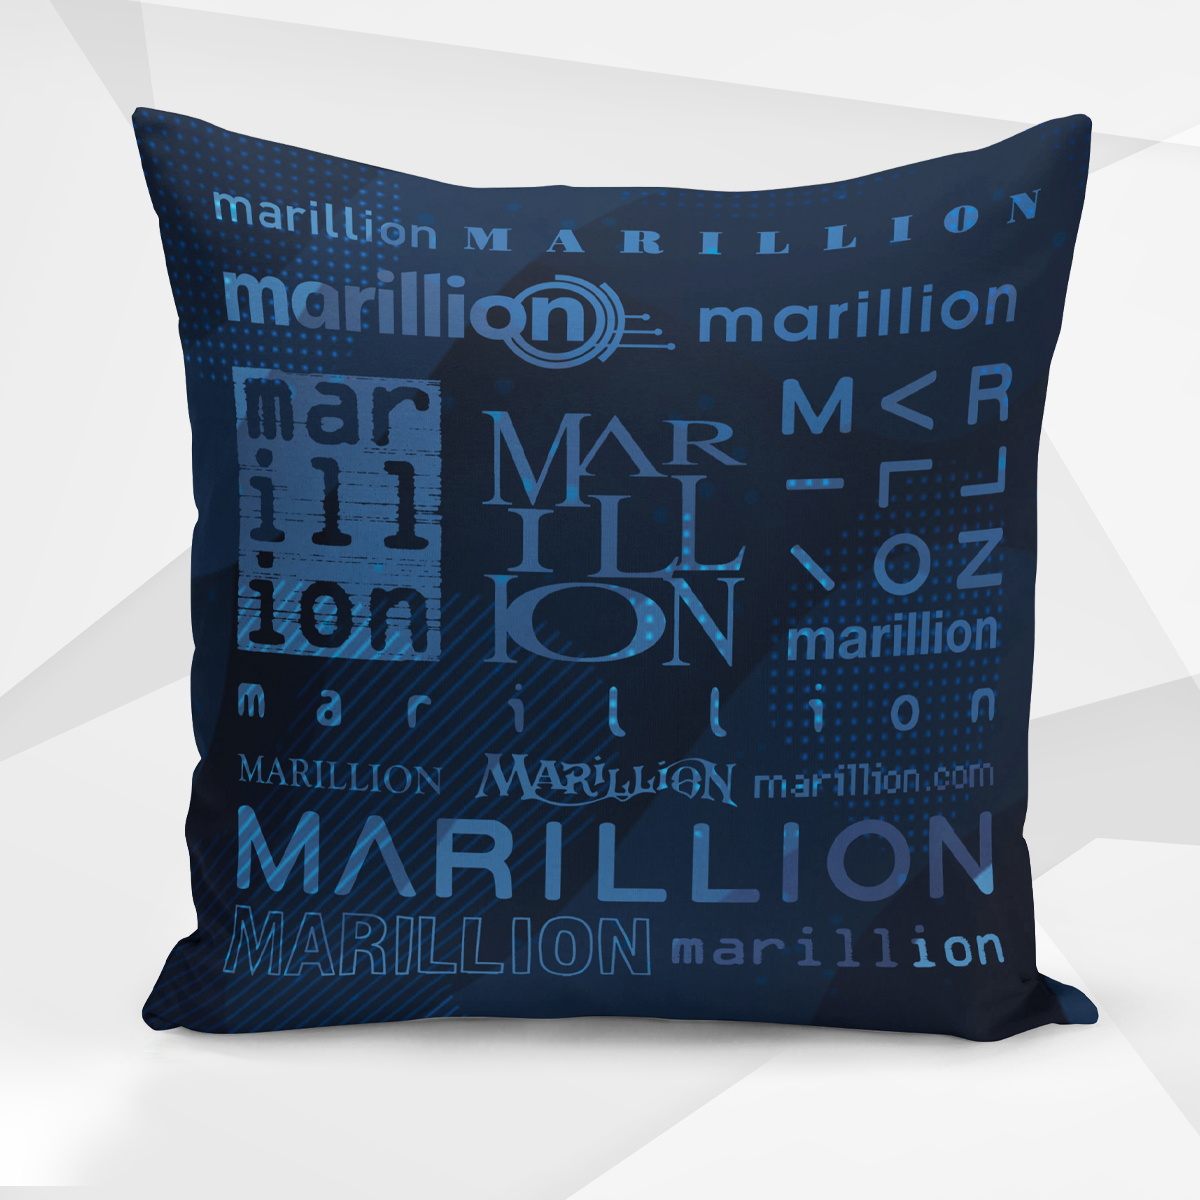 COUCH CONVENTION 2020 CUSHION COVER